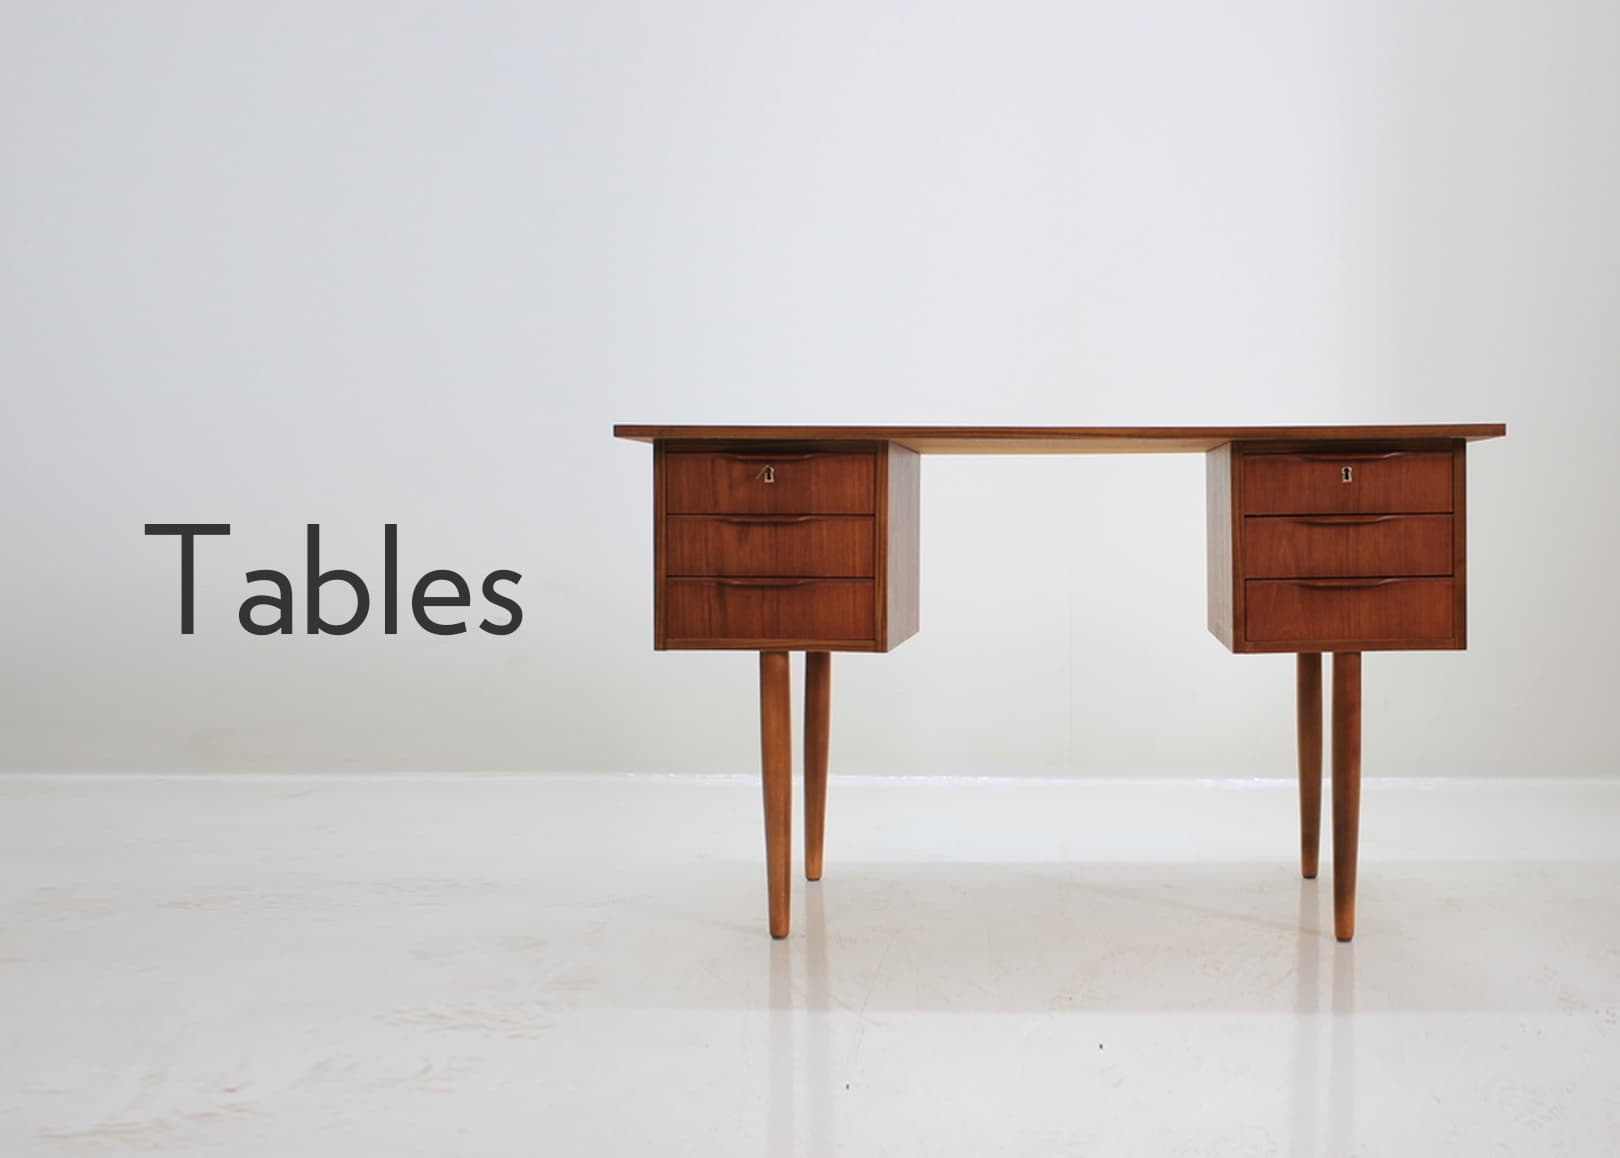 Shop Tables 8c9668c78d